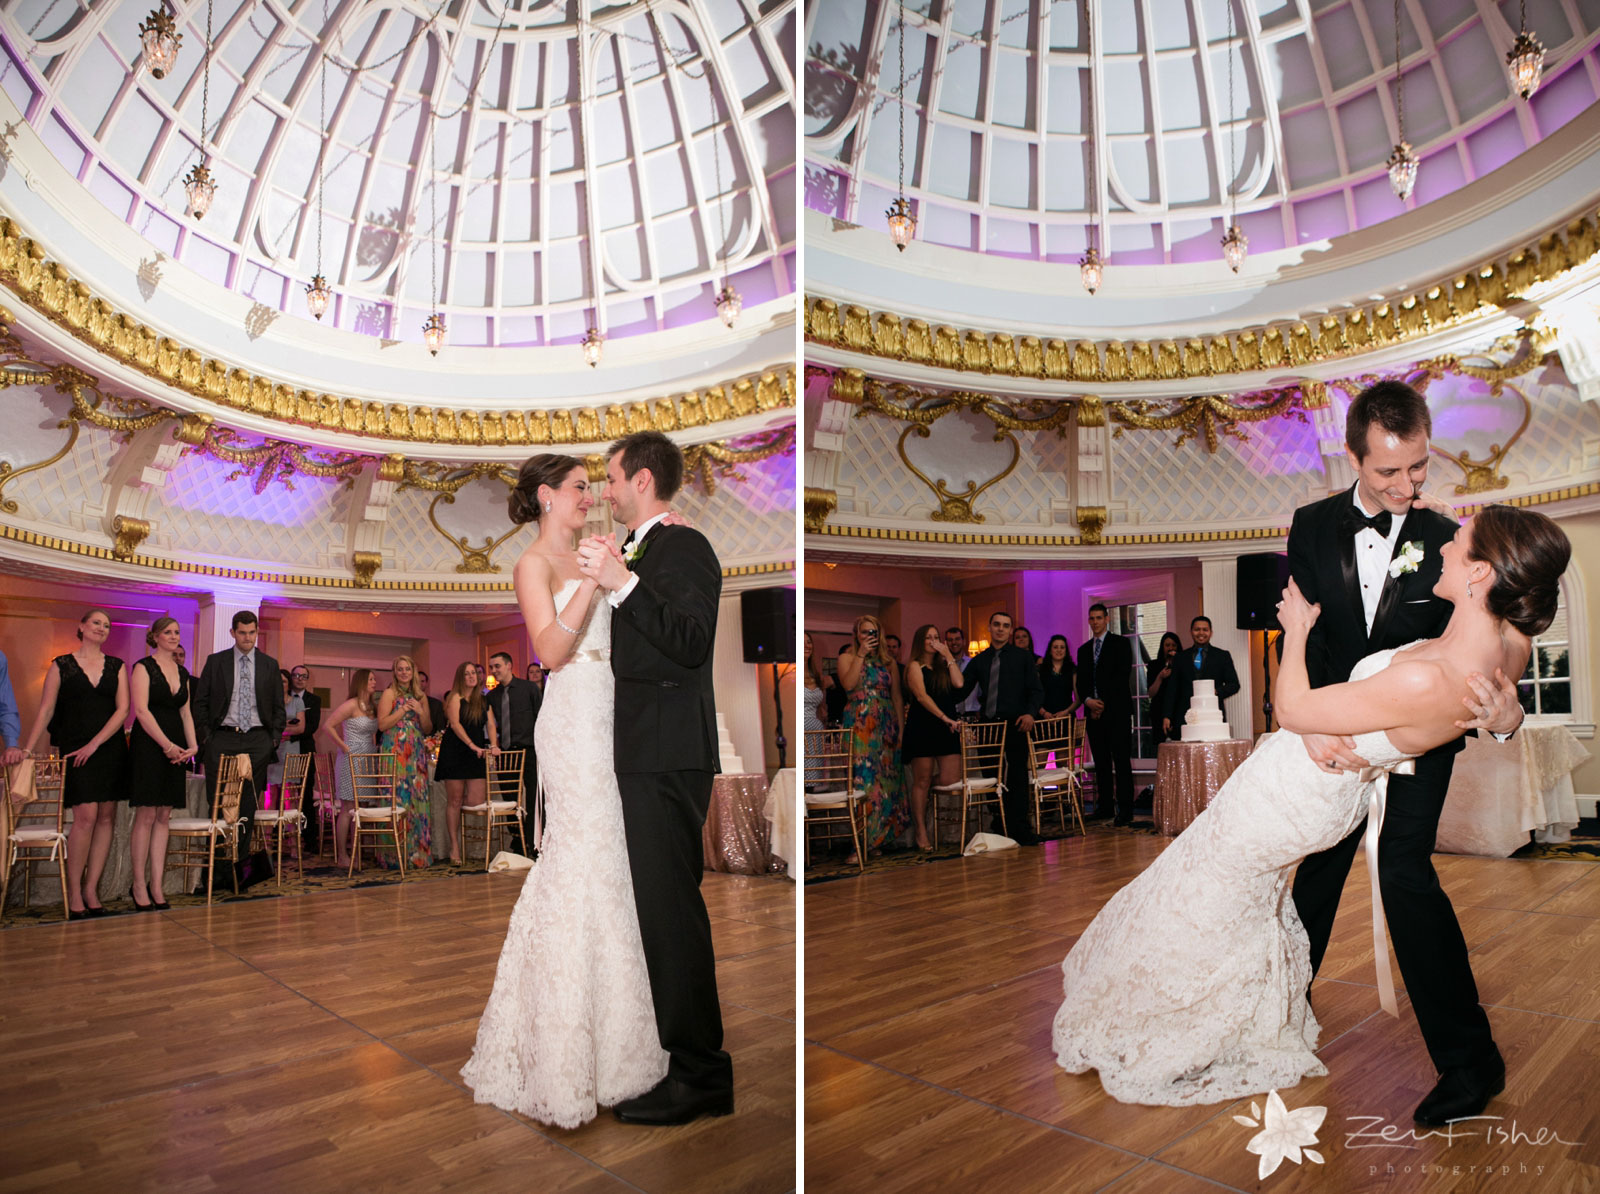 Bride And Groom Share Their First Dance At Reception Hall Holds Dips